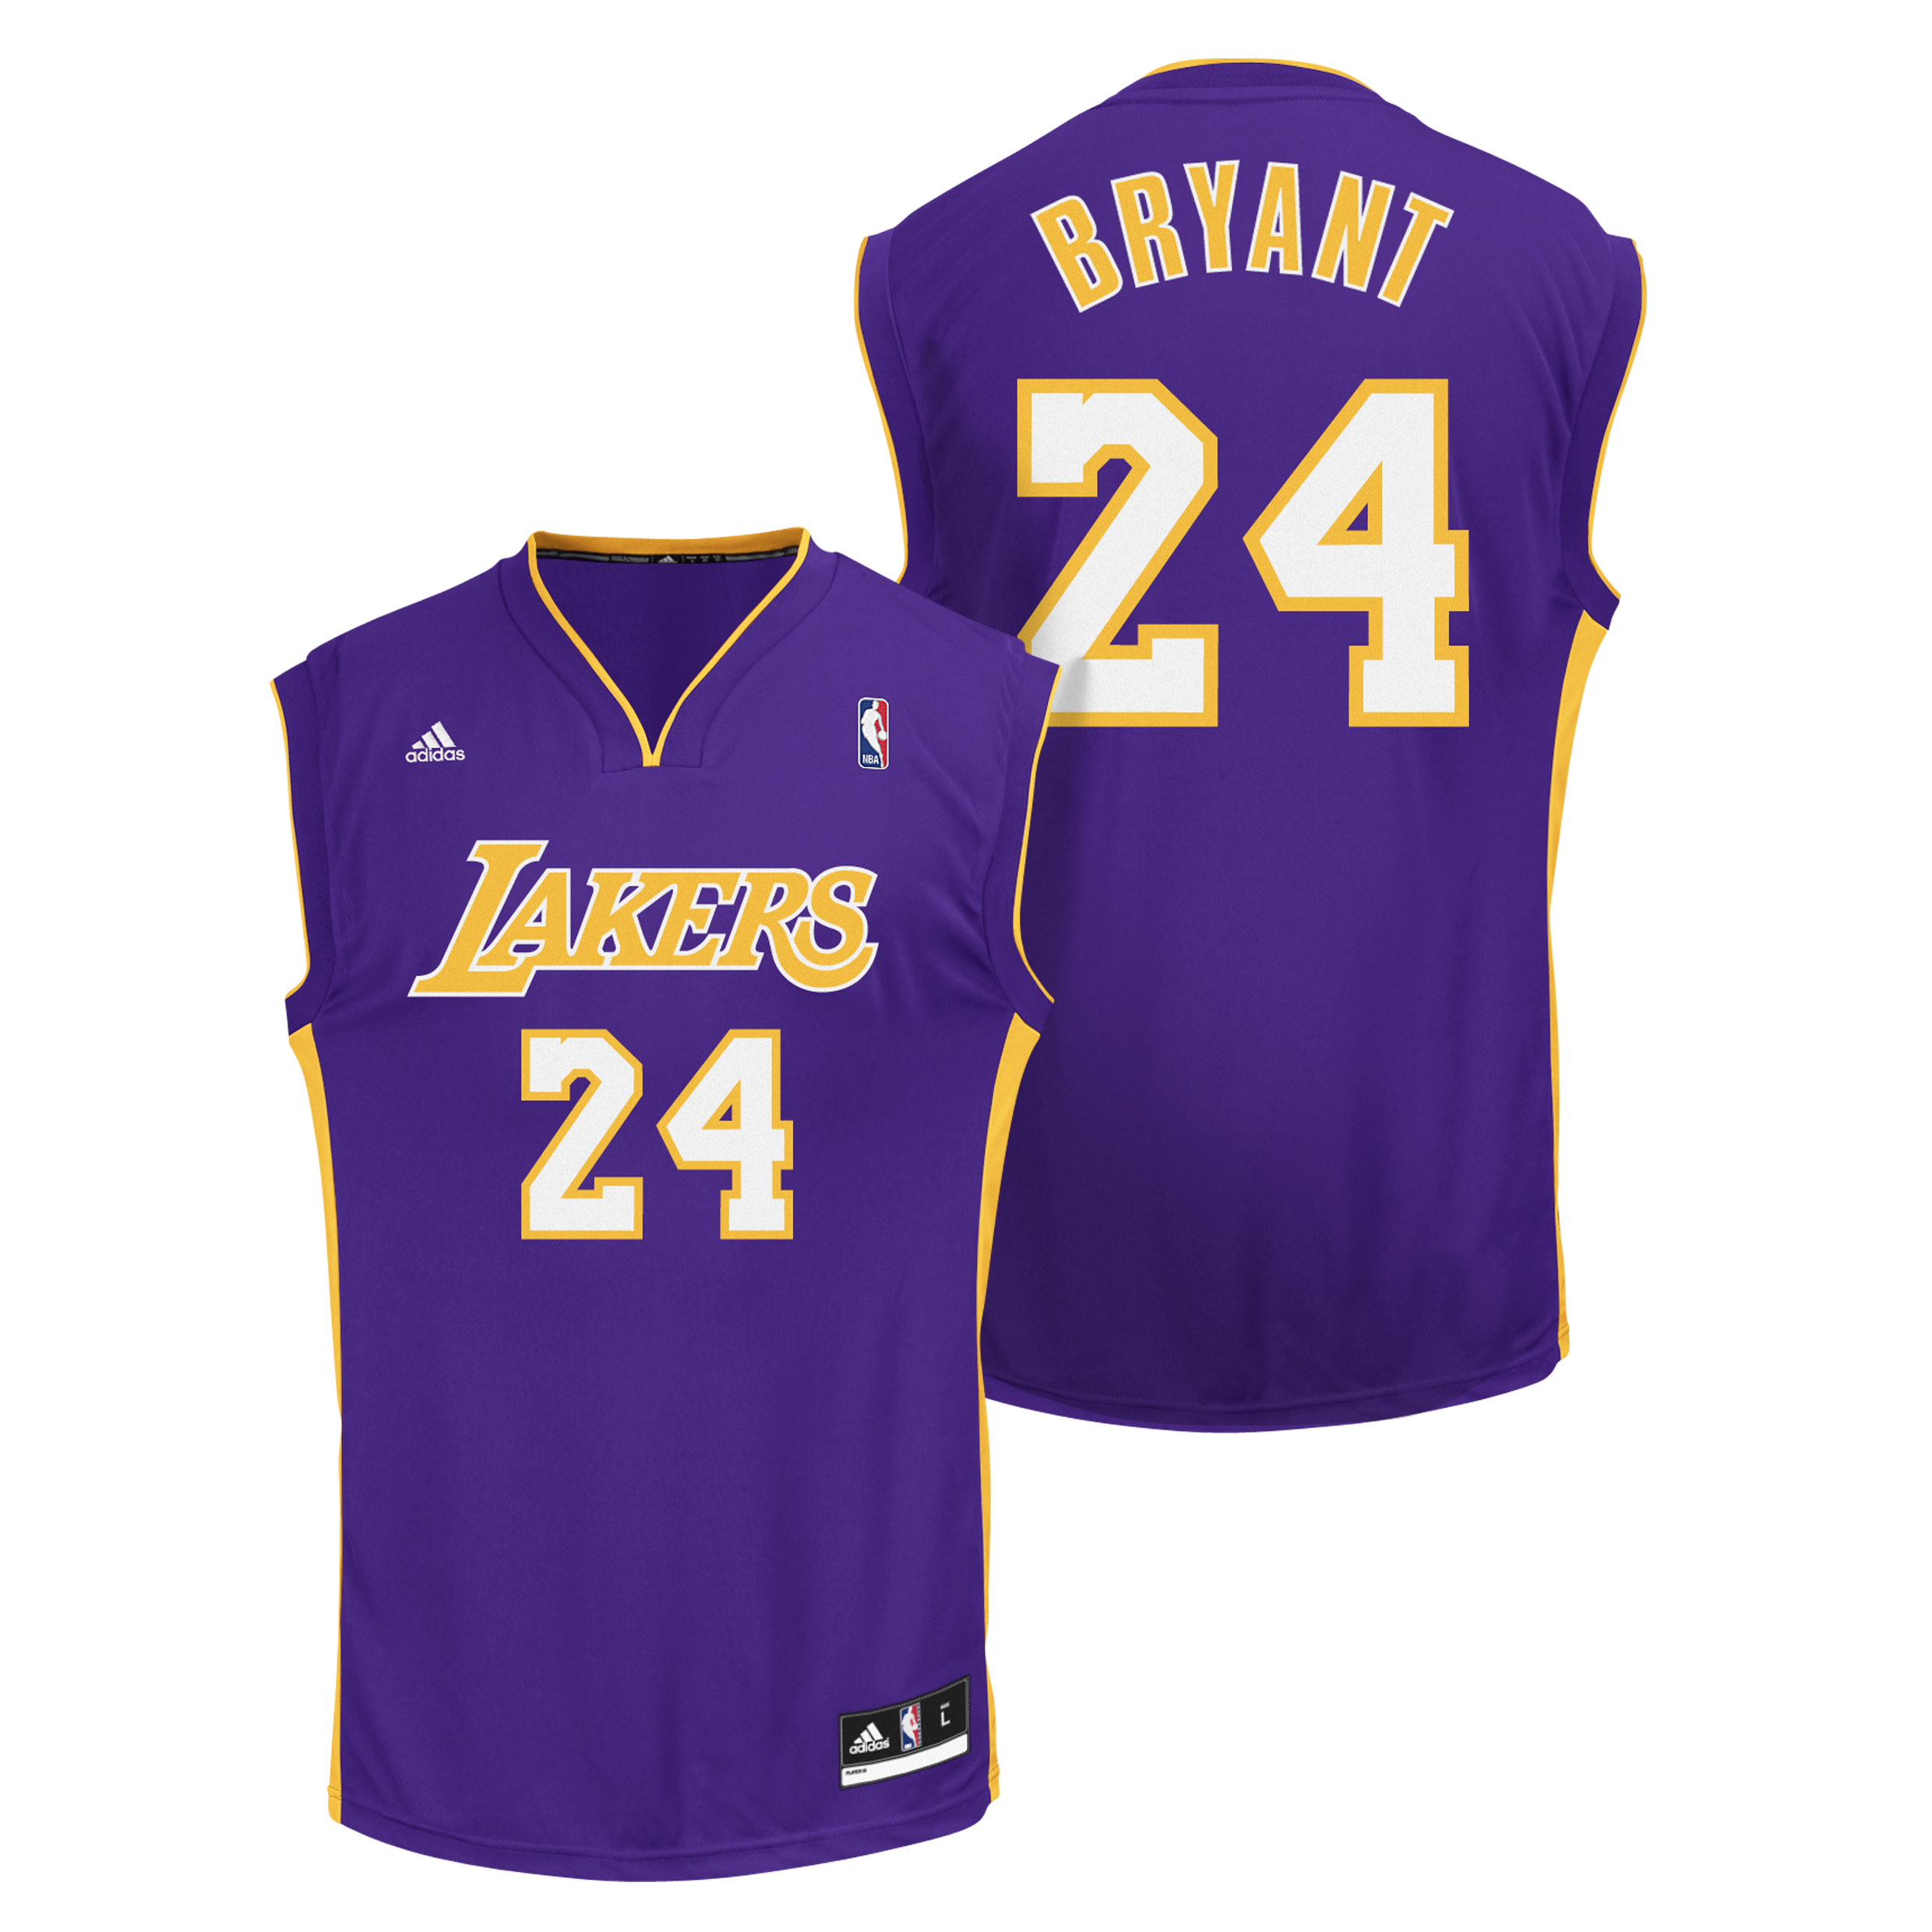 Los Angeles Lakers Road Purple Replica Jersey - Kobe Bryant - Mens